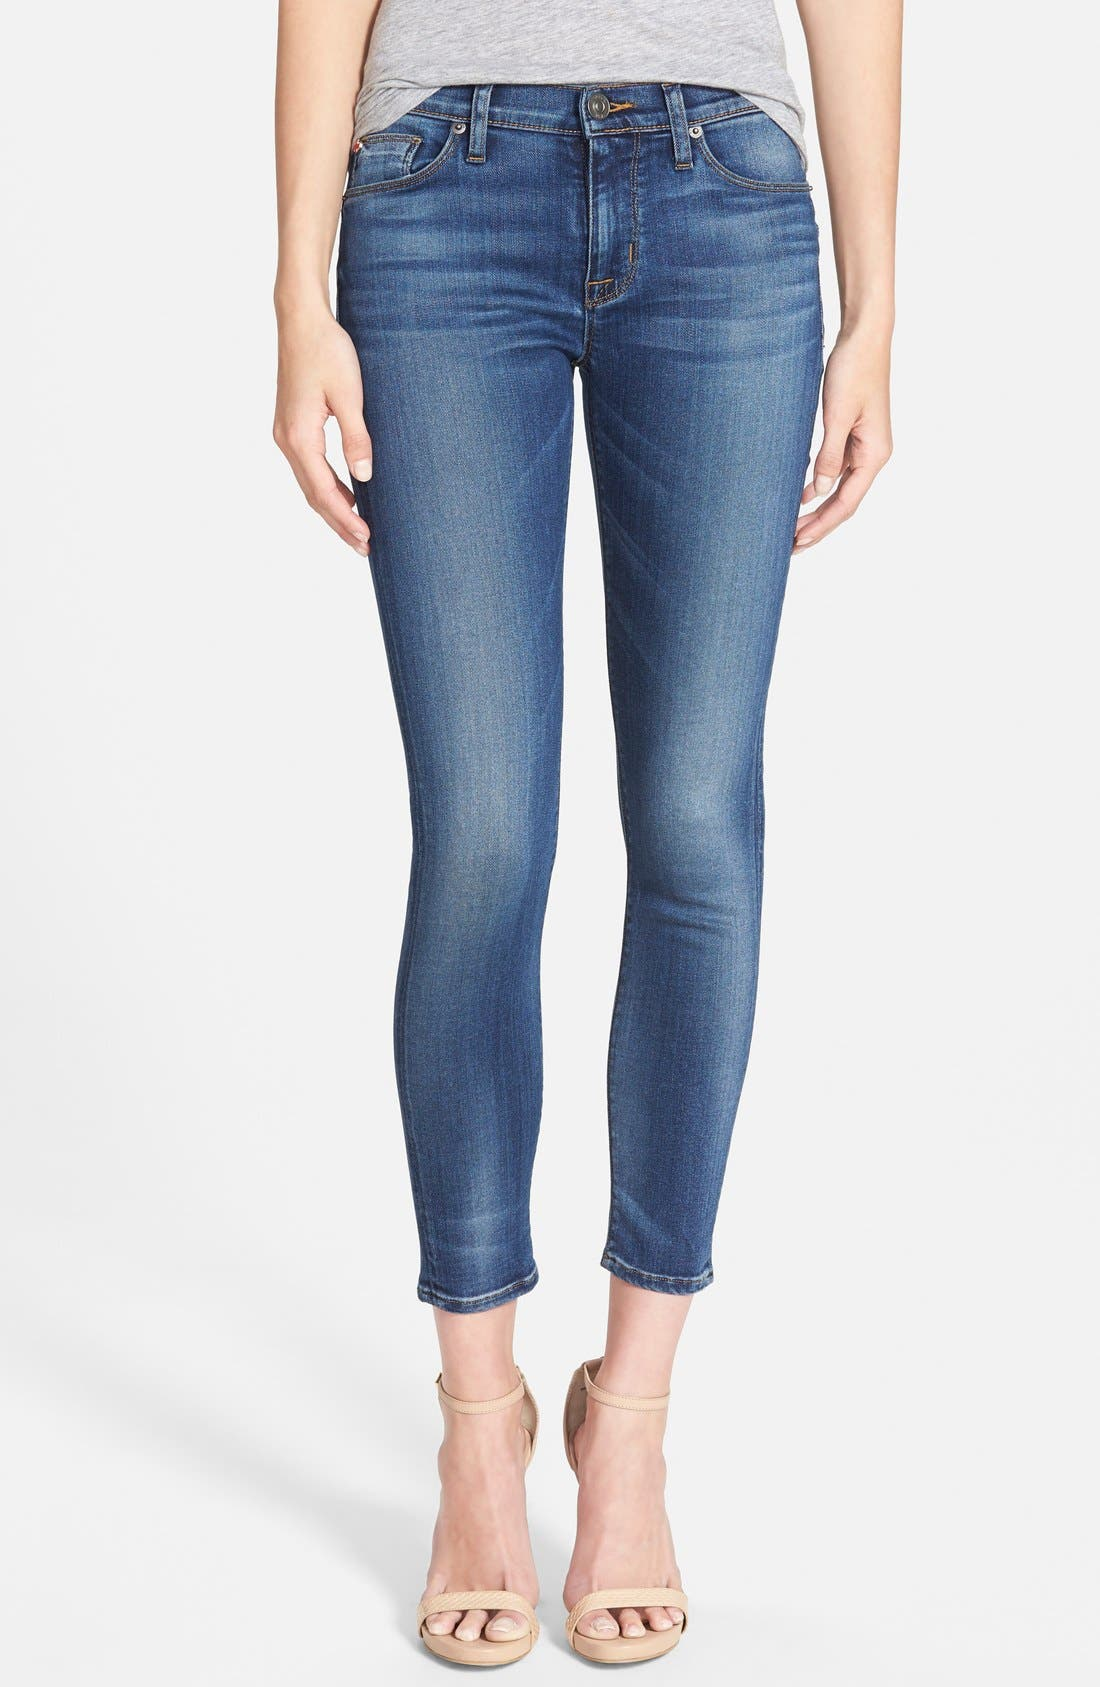 'Nico' Ankle Skinny Jeans,                             Main thumbnail 4, color,